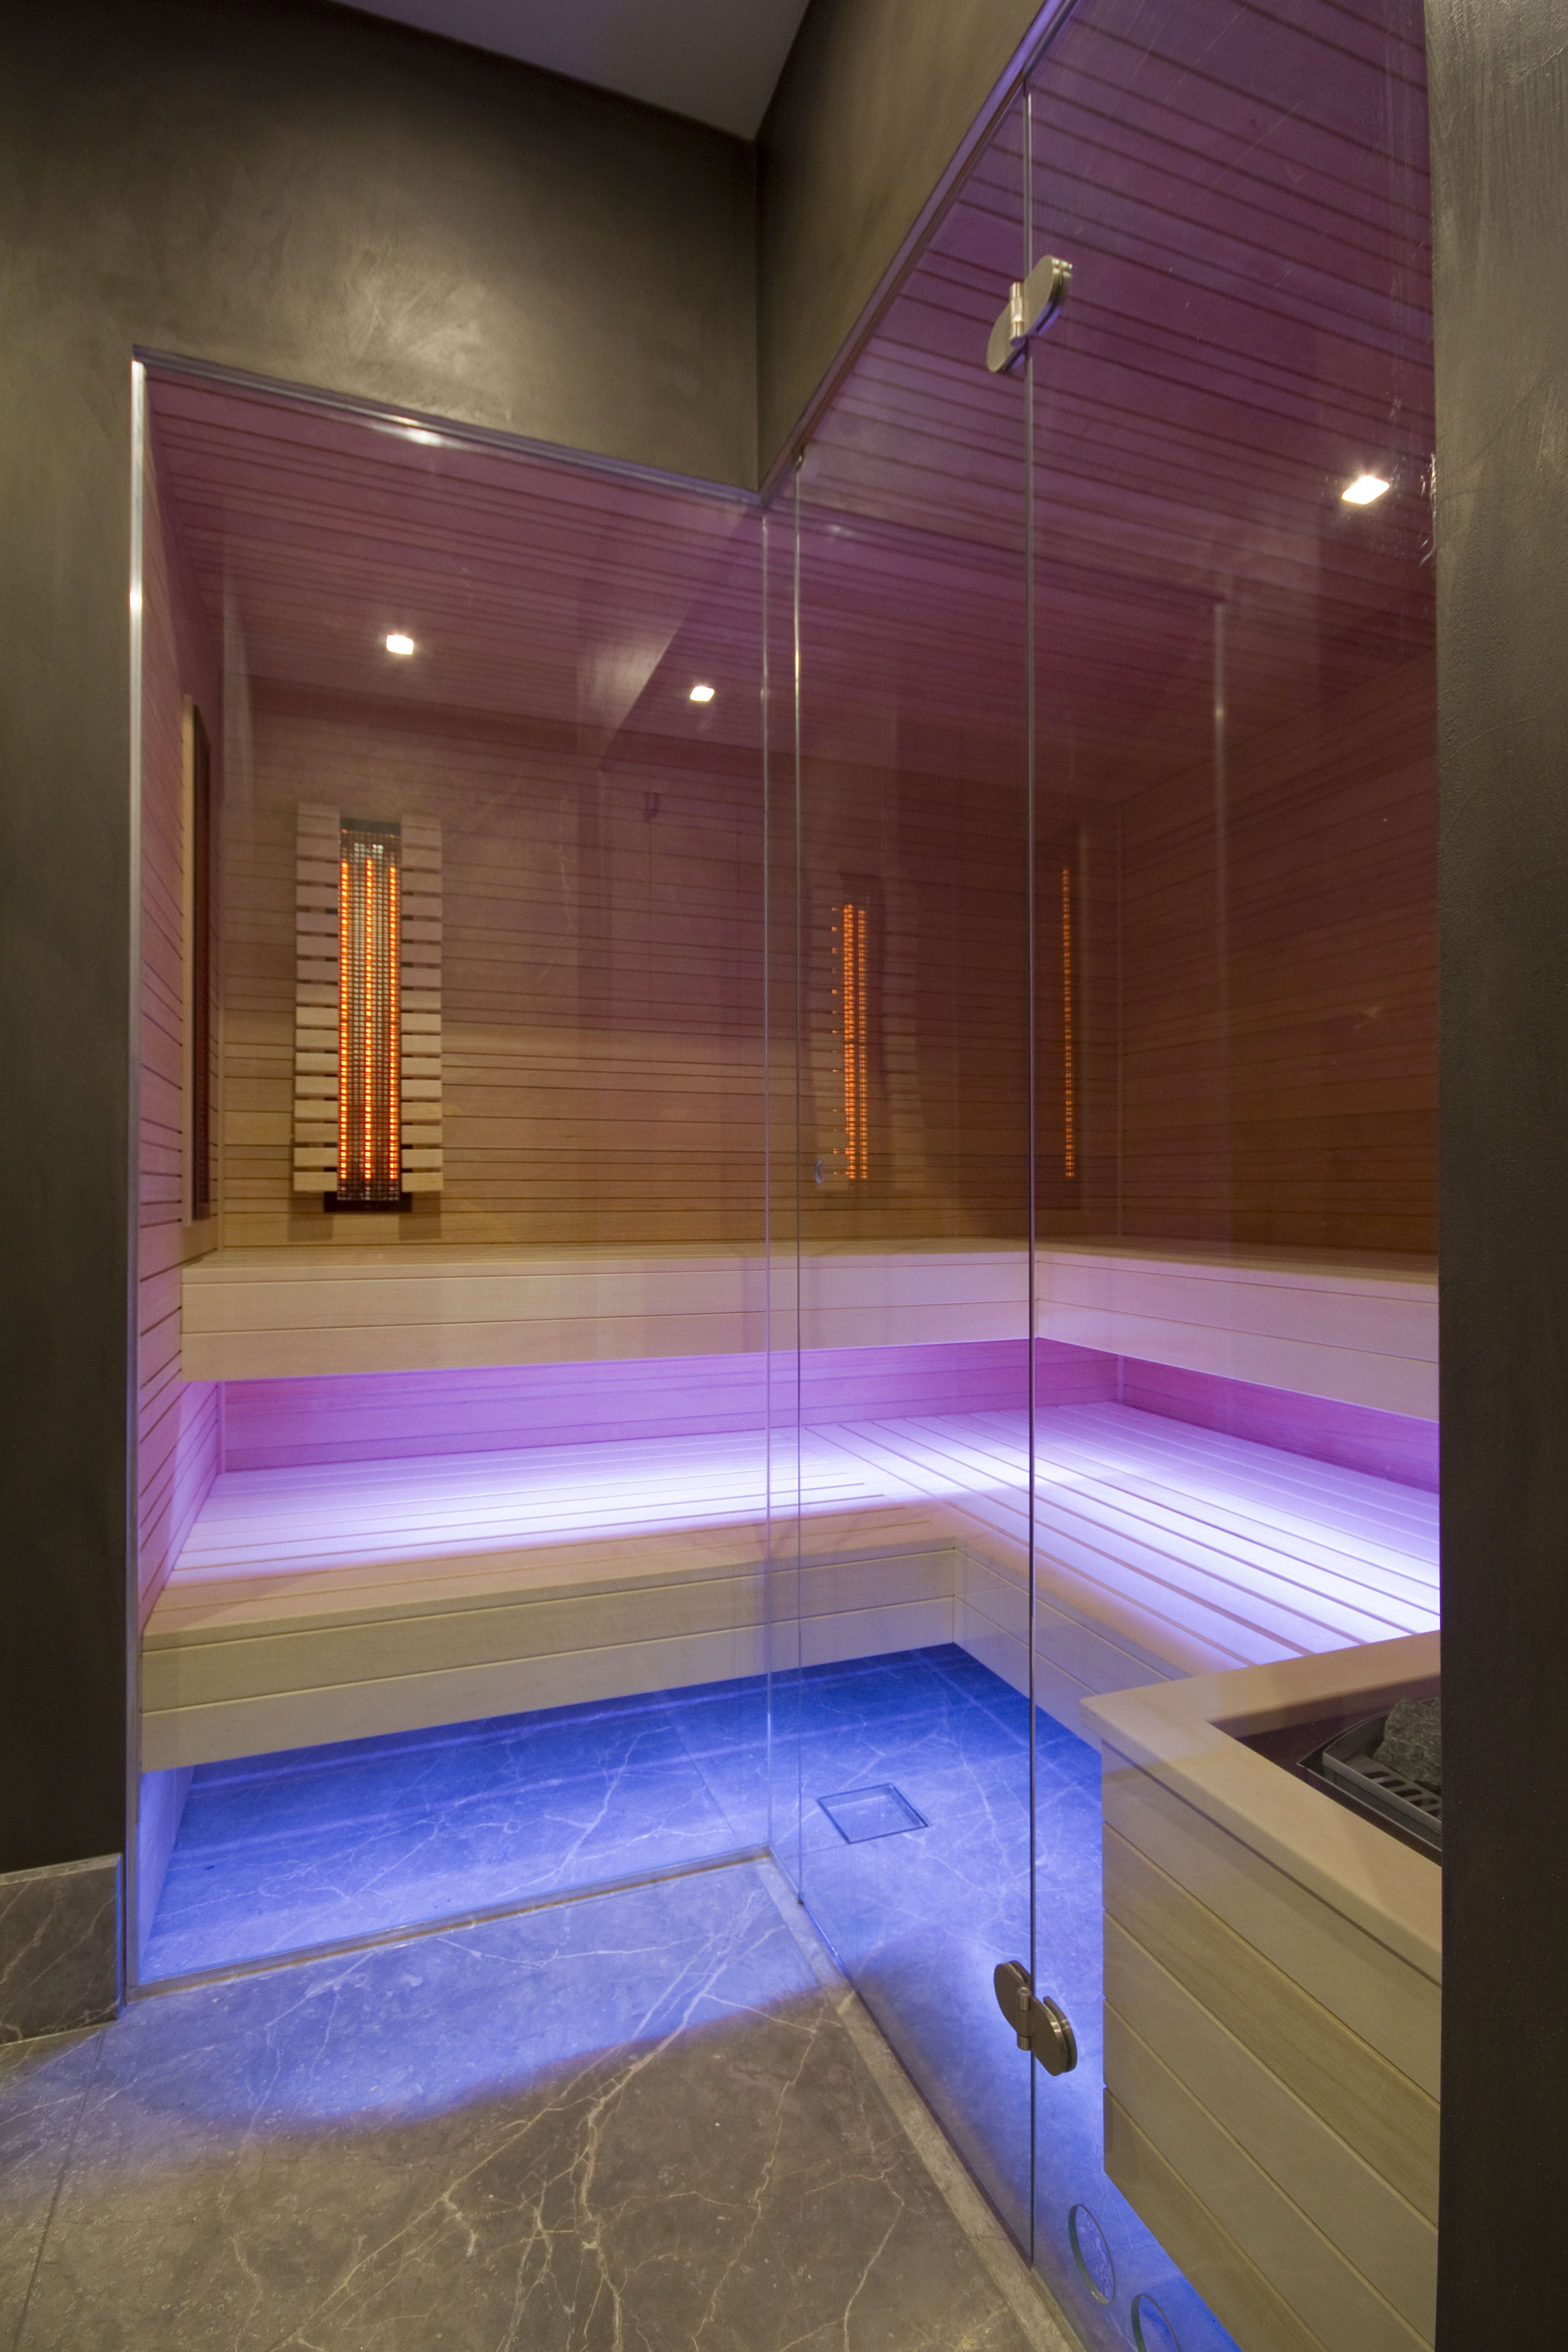 Private Sauna In The Netherlands Designed By Wolterinck Realized By 4seasonsspa Www 4seasonsspa Pro Com In 2020 Spa Rooms Baths Interior Sauna Tubs